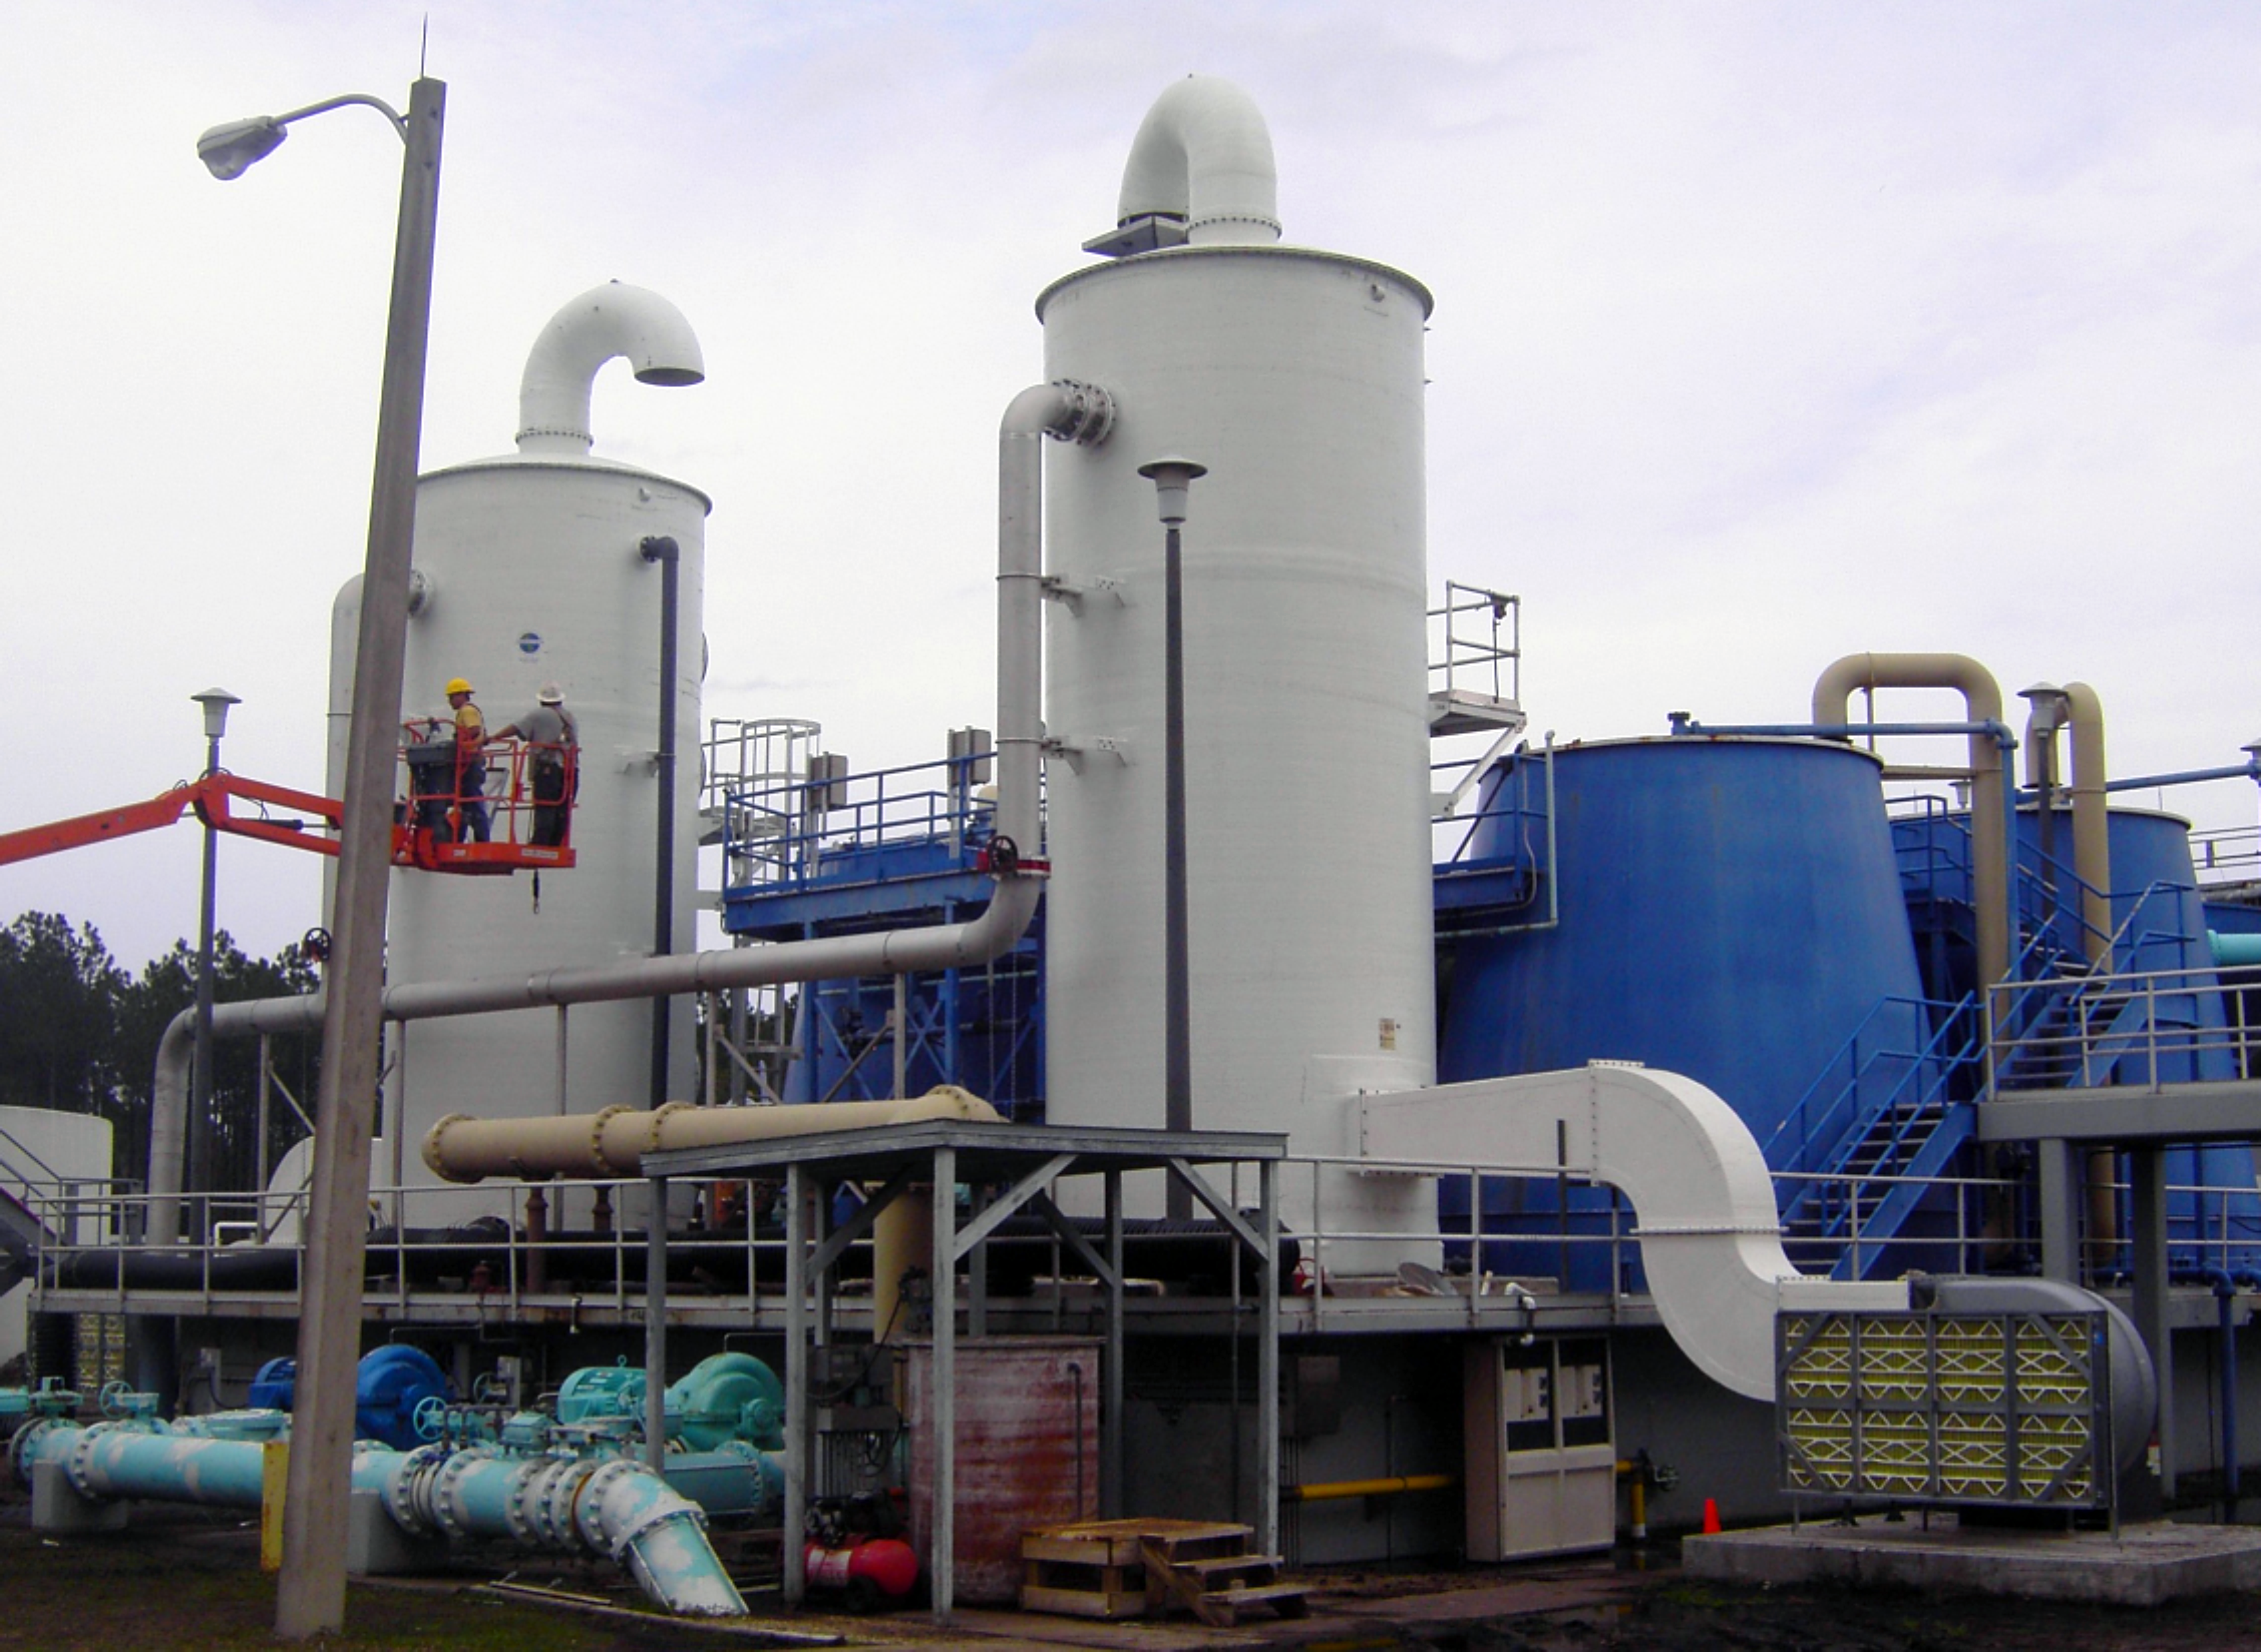 """Two 11'-0"""" Diameter x 37'-2"""" high Delta air stripping towers to treat potable water at the Water Treatment Plant site in St. Augustine, Florida. The two white towers are connected to additional systems. Two men are on a platform next to the air strippers."""